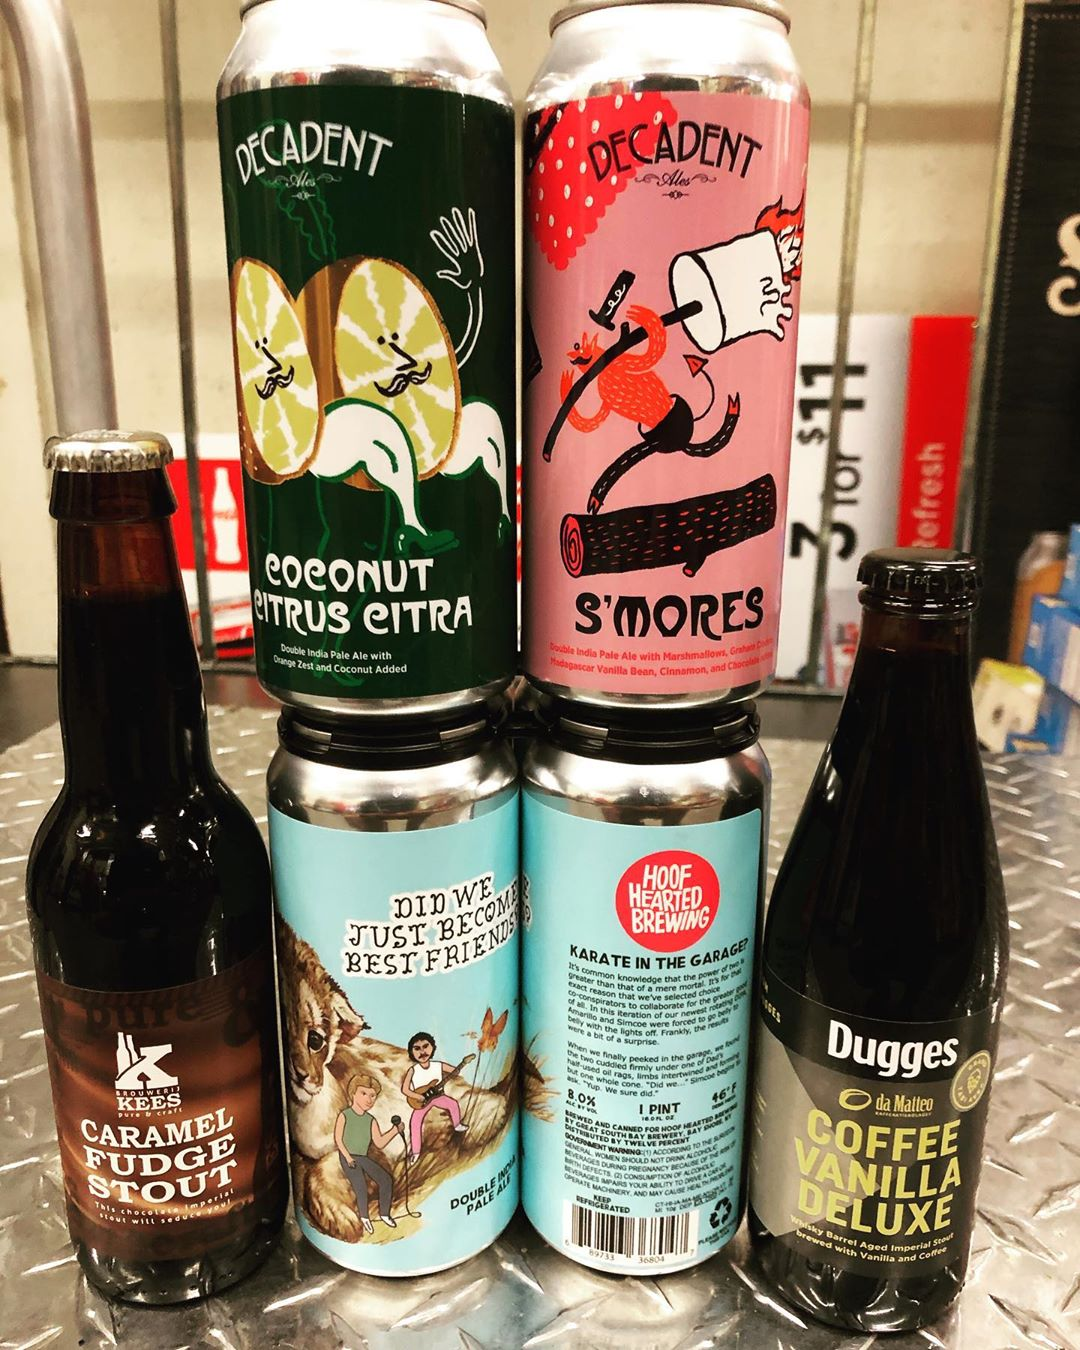 New brews now in stock at our Perkins Rd location! @brouwerijkees @hoofheartedbrewing @decadentales @duggesbryggeri #newbrewtuesday…